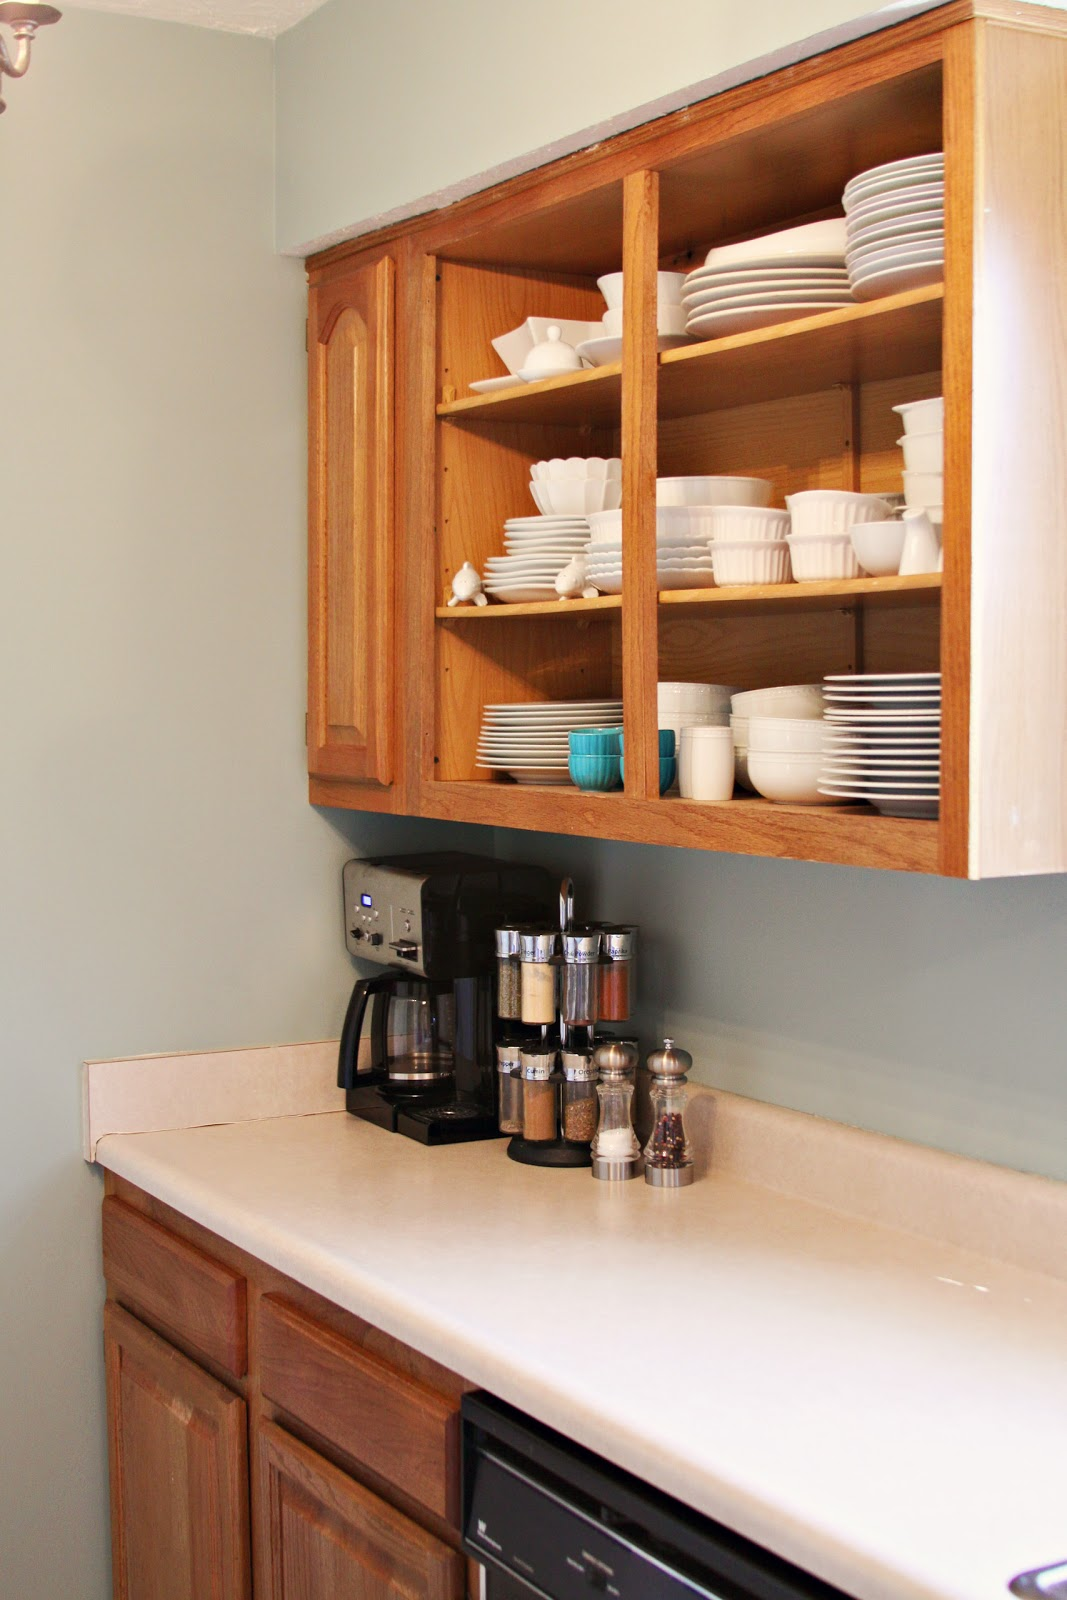 kitchen cabinet shelving flush lighting welcome  new post has been published on kalkunta